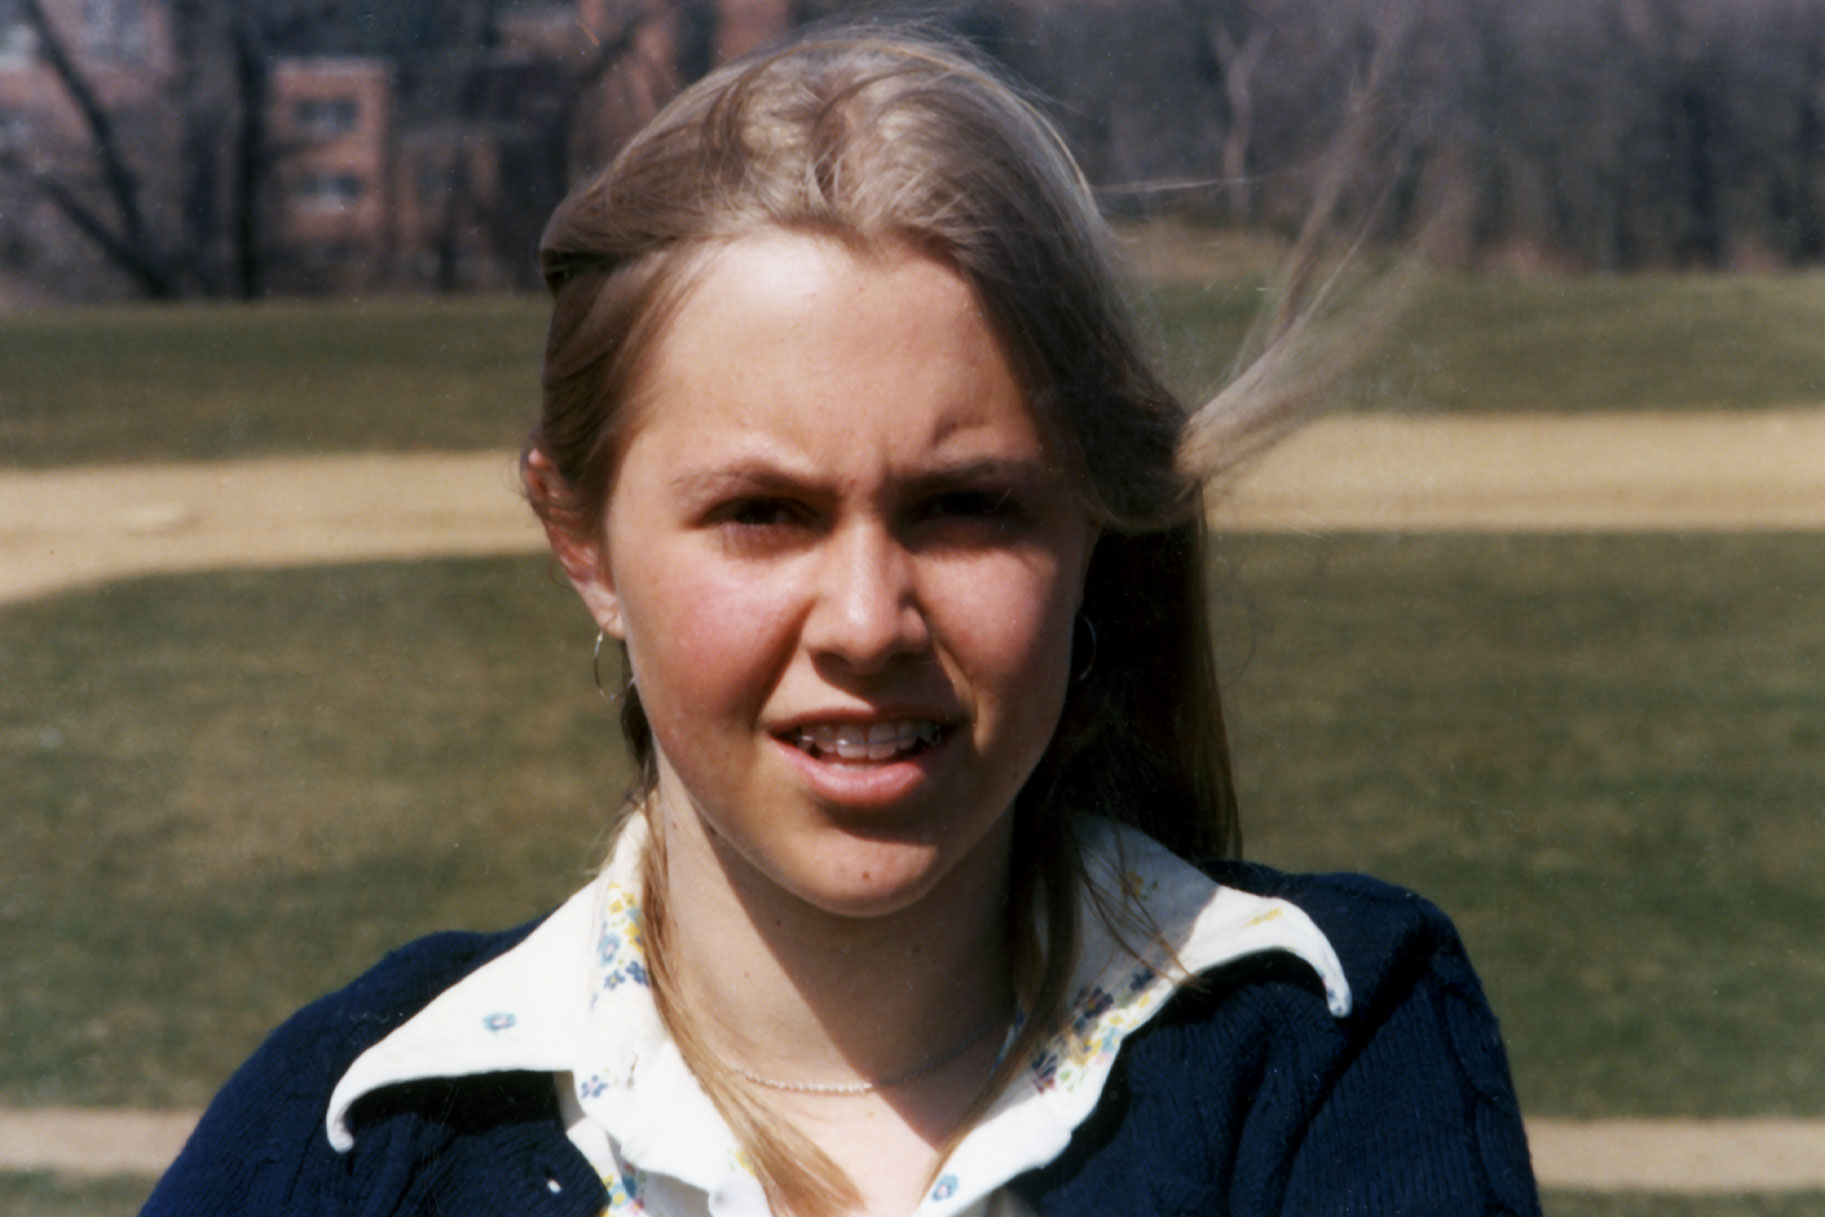 15-Year-Old Martha Moxley's Infamous Murder, Shown In Photos